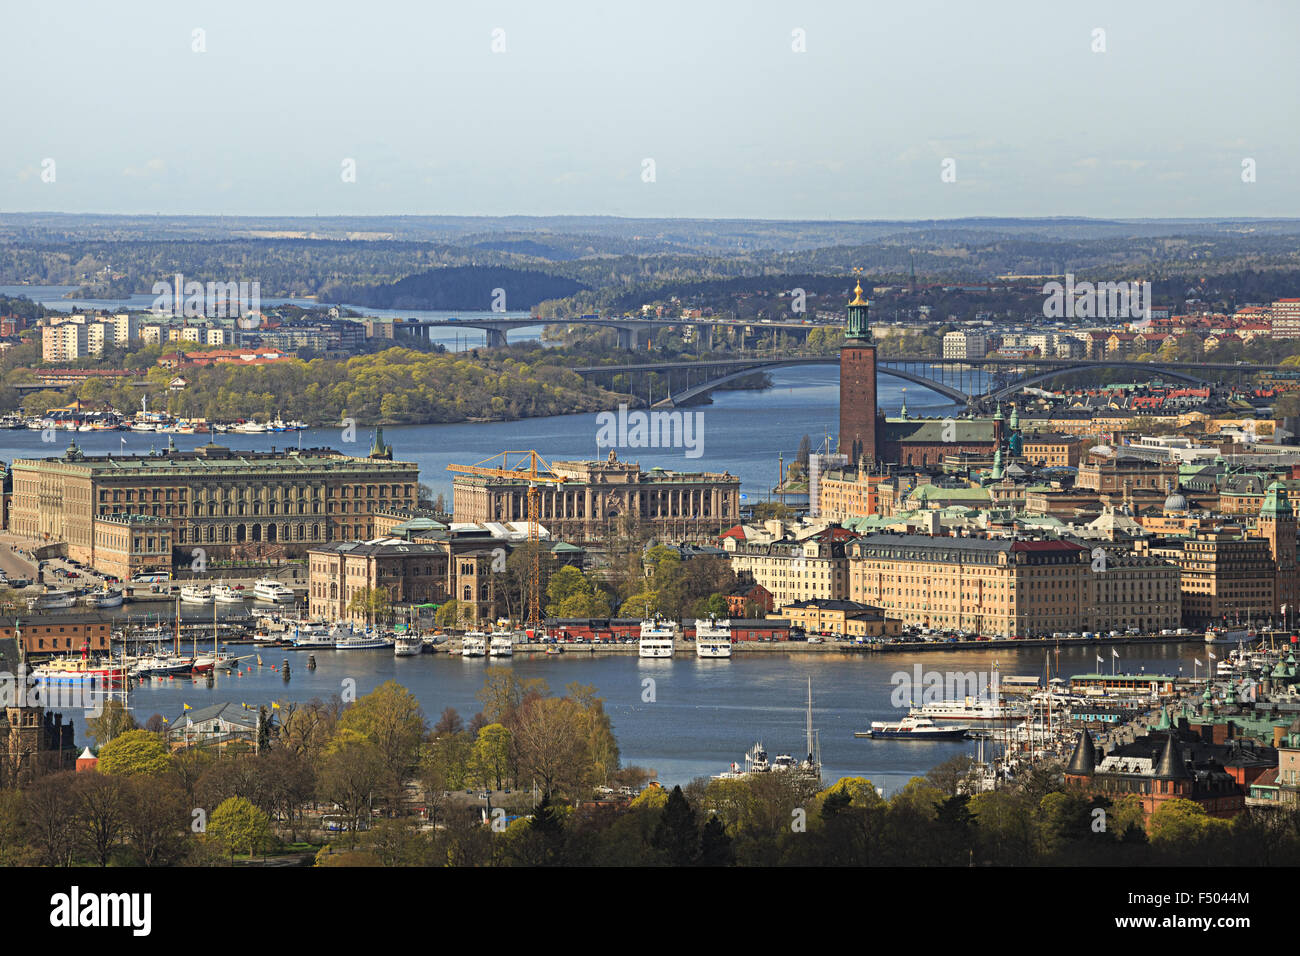 The city on the water, Stockholm Collection - Stock Image